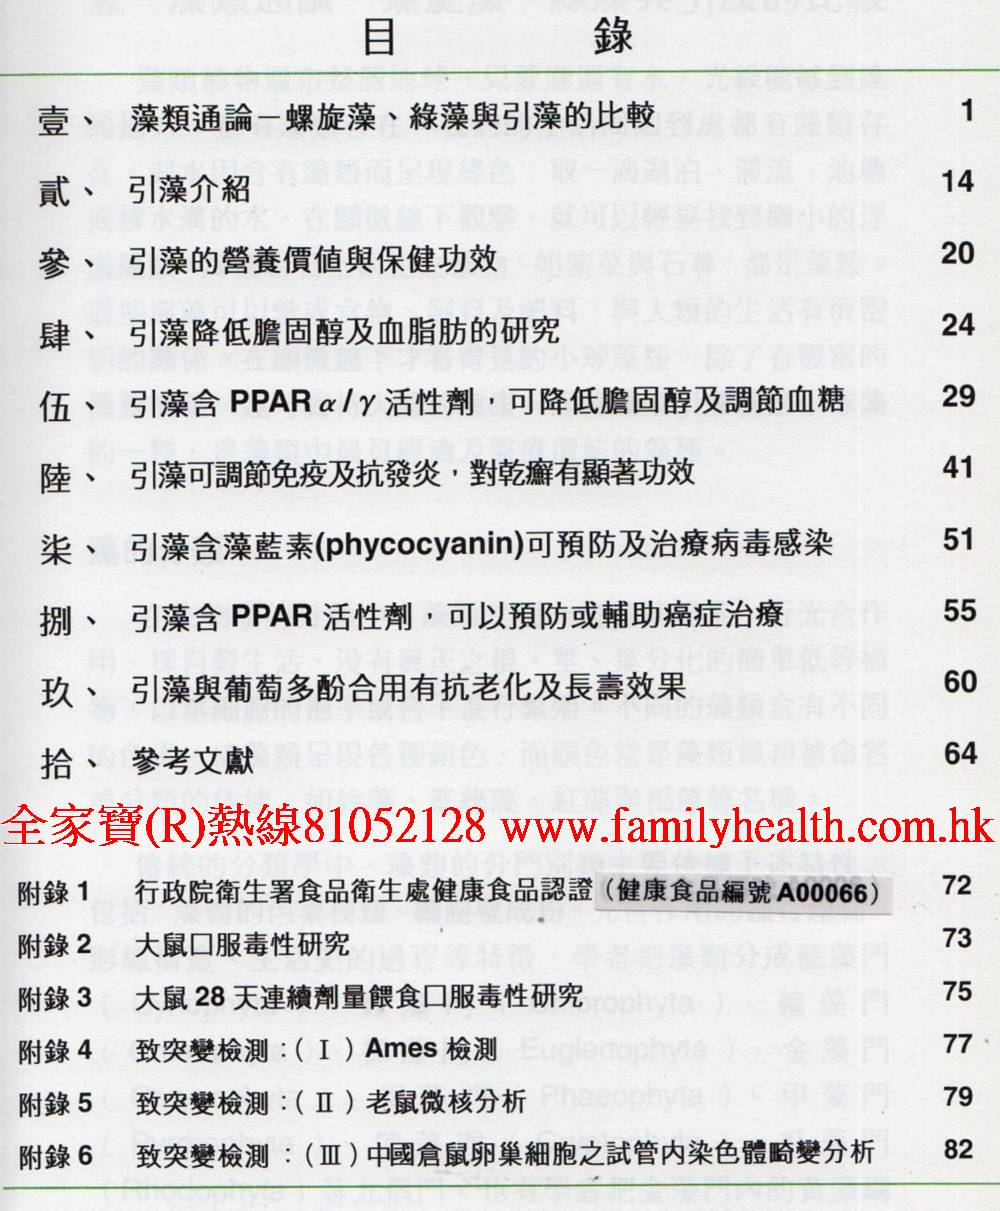 http://www.familyhealth.com.hk/files/full/930_2.jpg